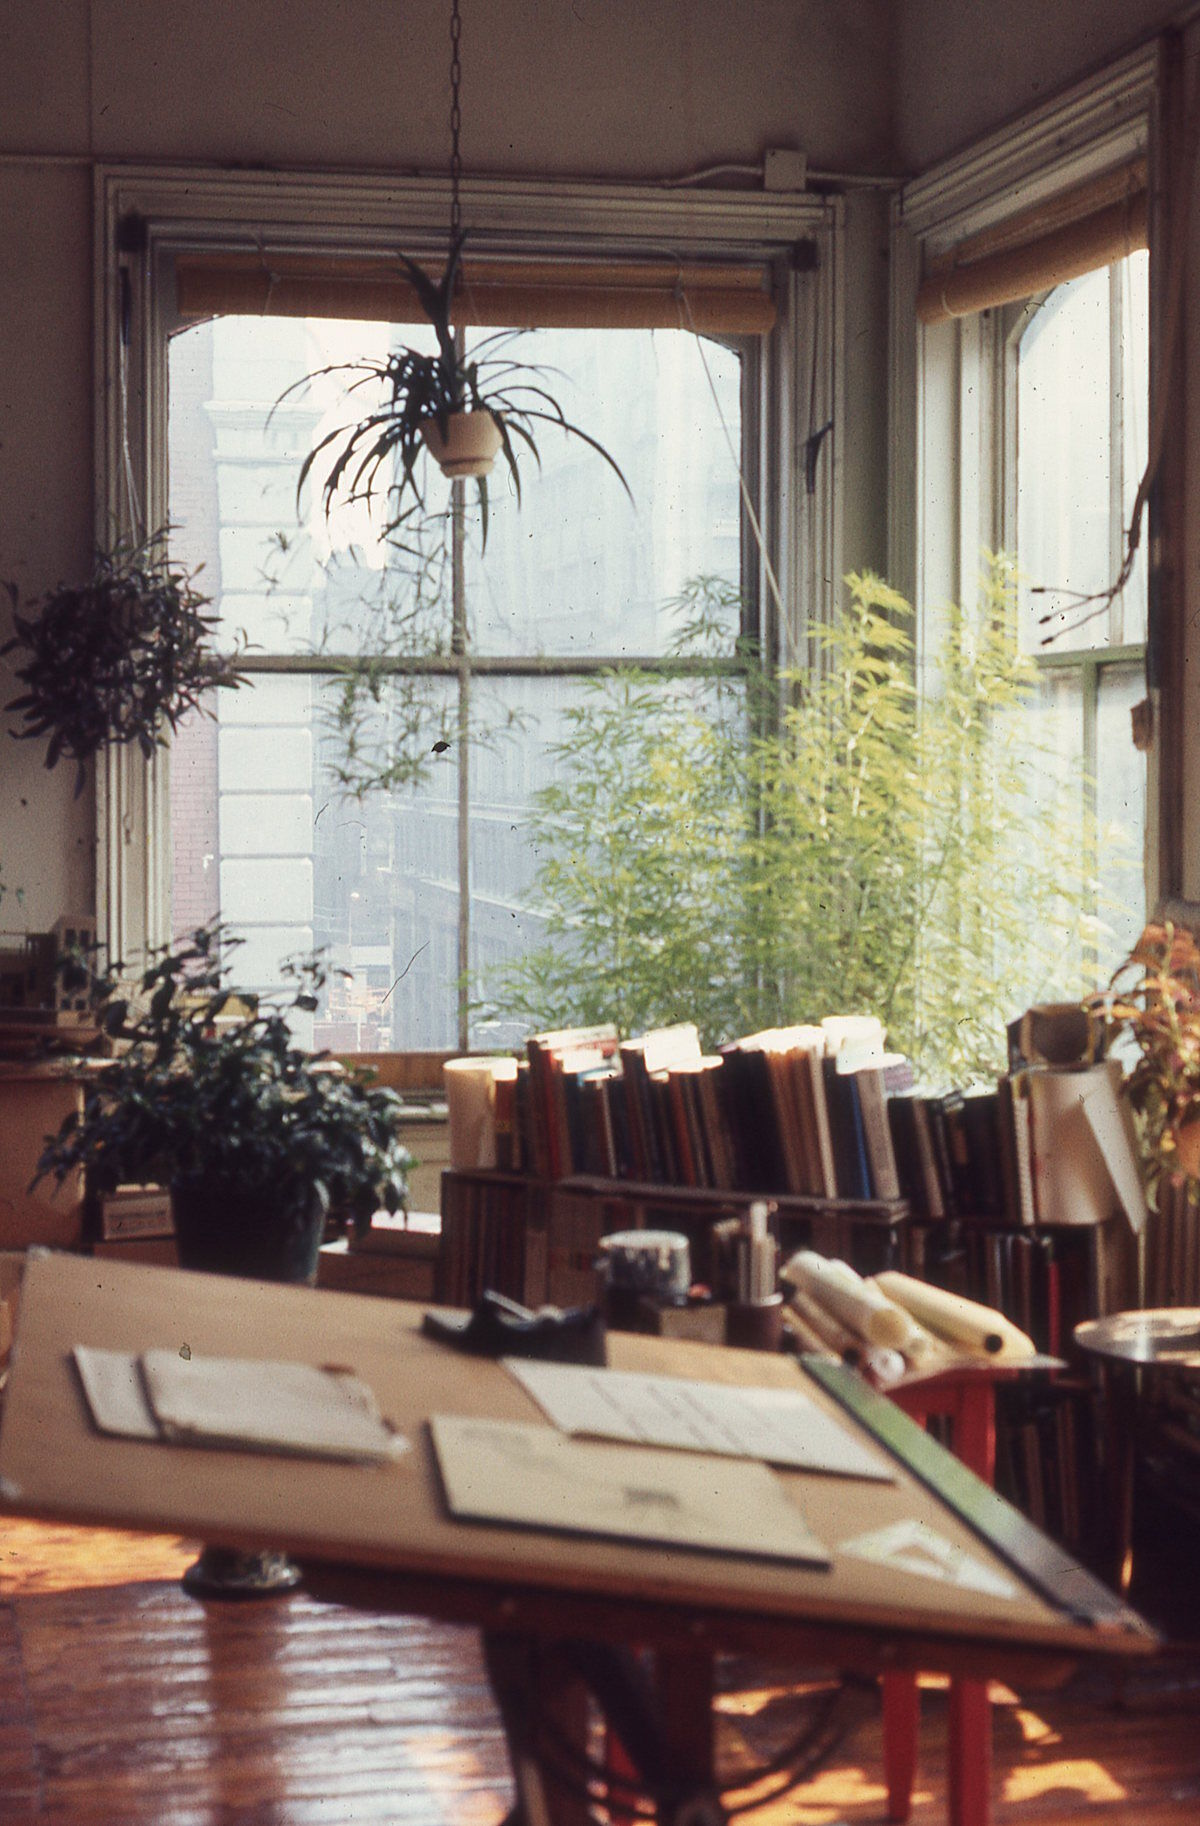 Interior view of a loft with a drawing table, indoor garden, and a window looking east down Broome Street, New York, circa 1971. Photo by Eric Cashdan.